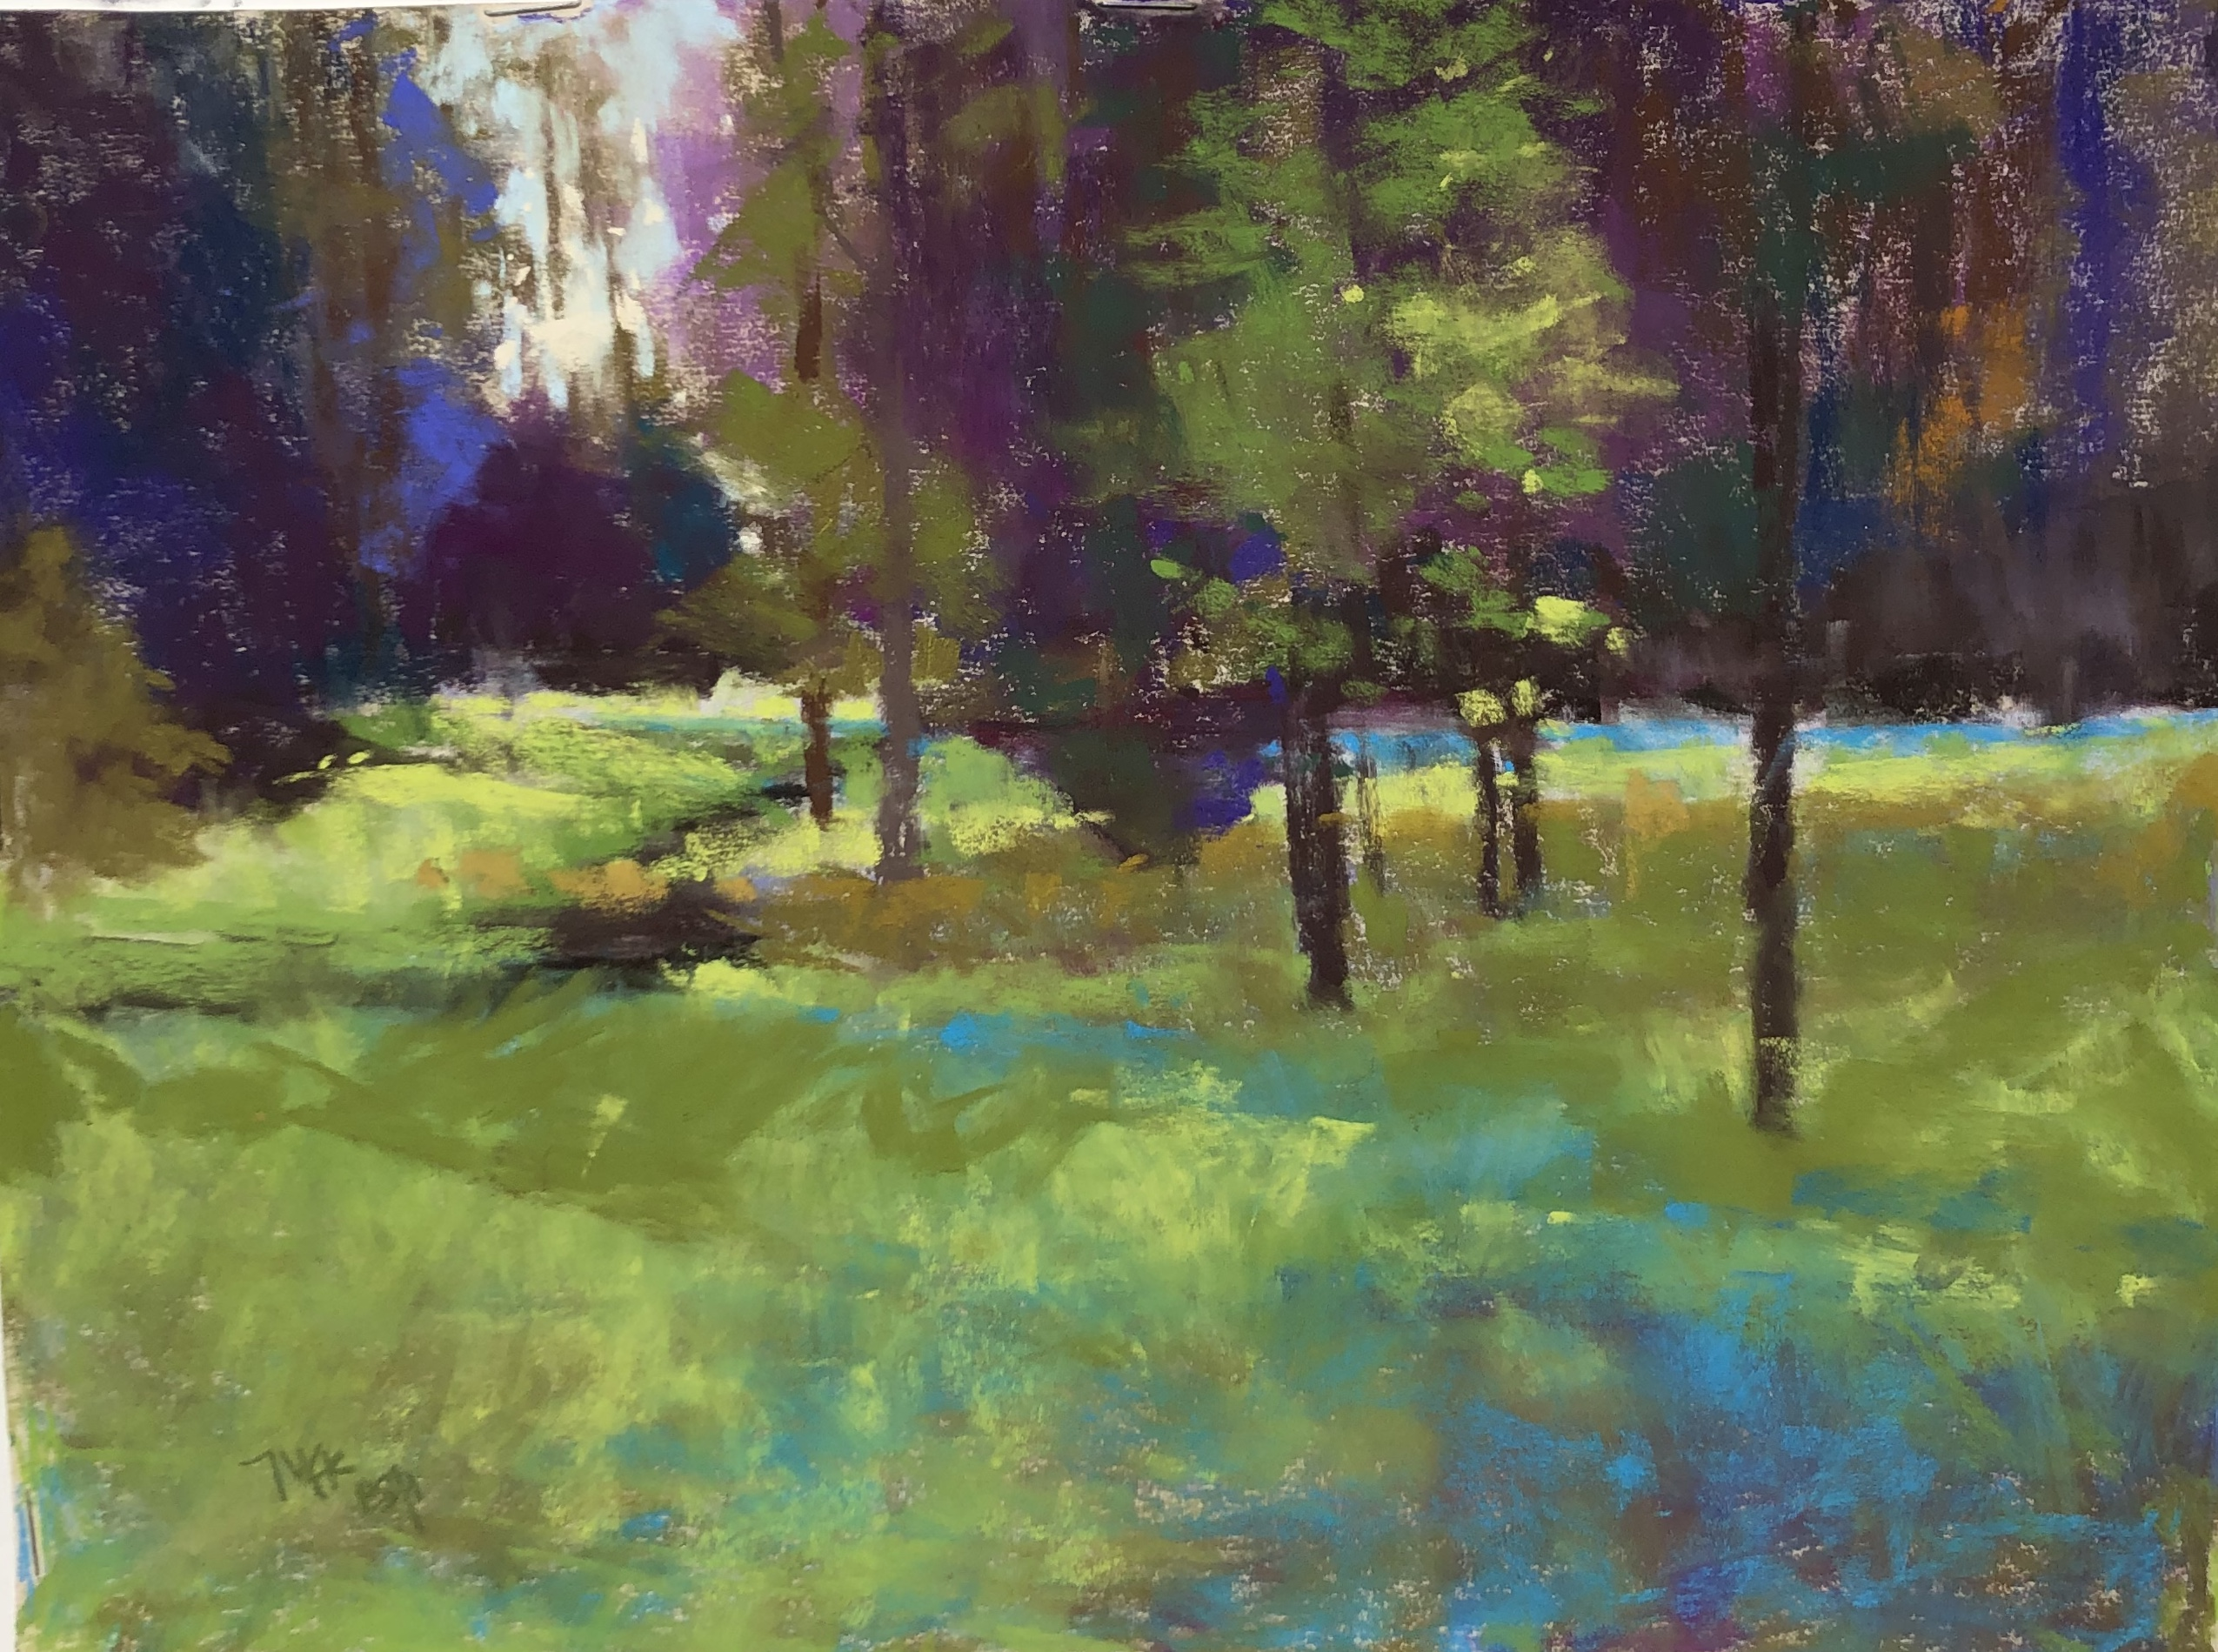 Mac-Schueppert-Heins-Creek-Afternoon-pastel